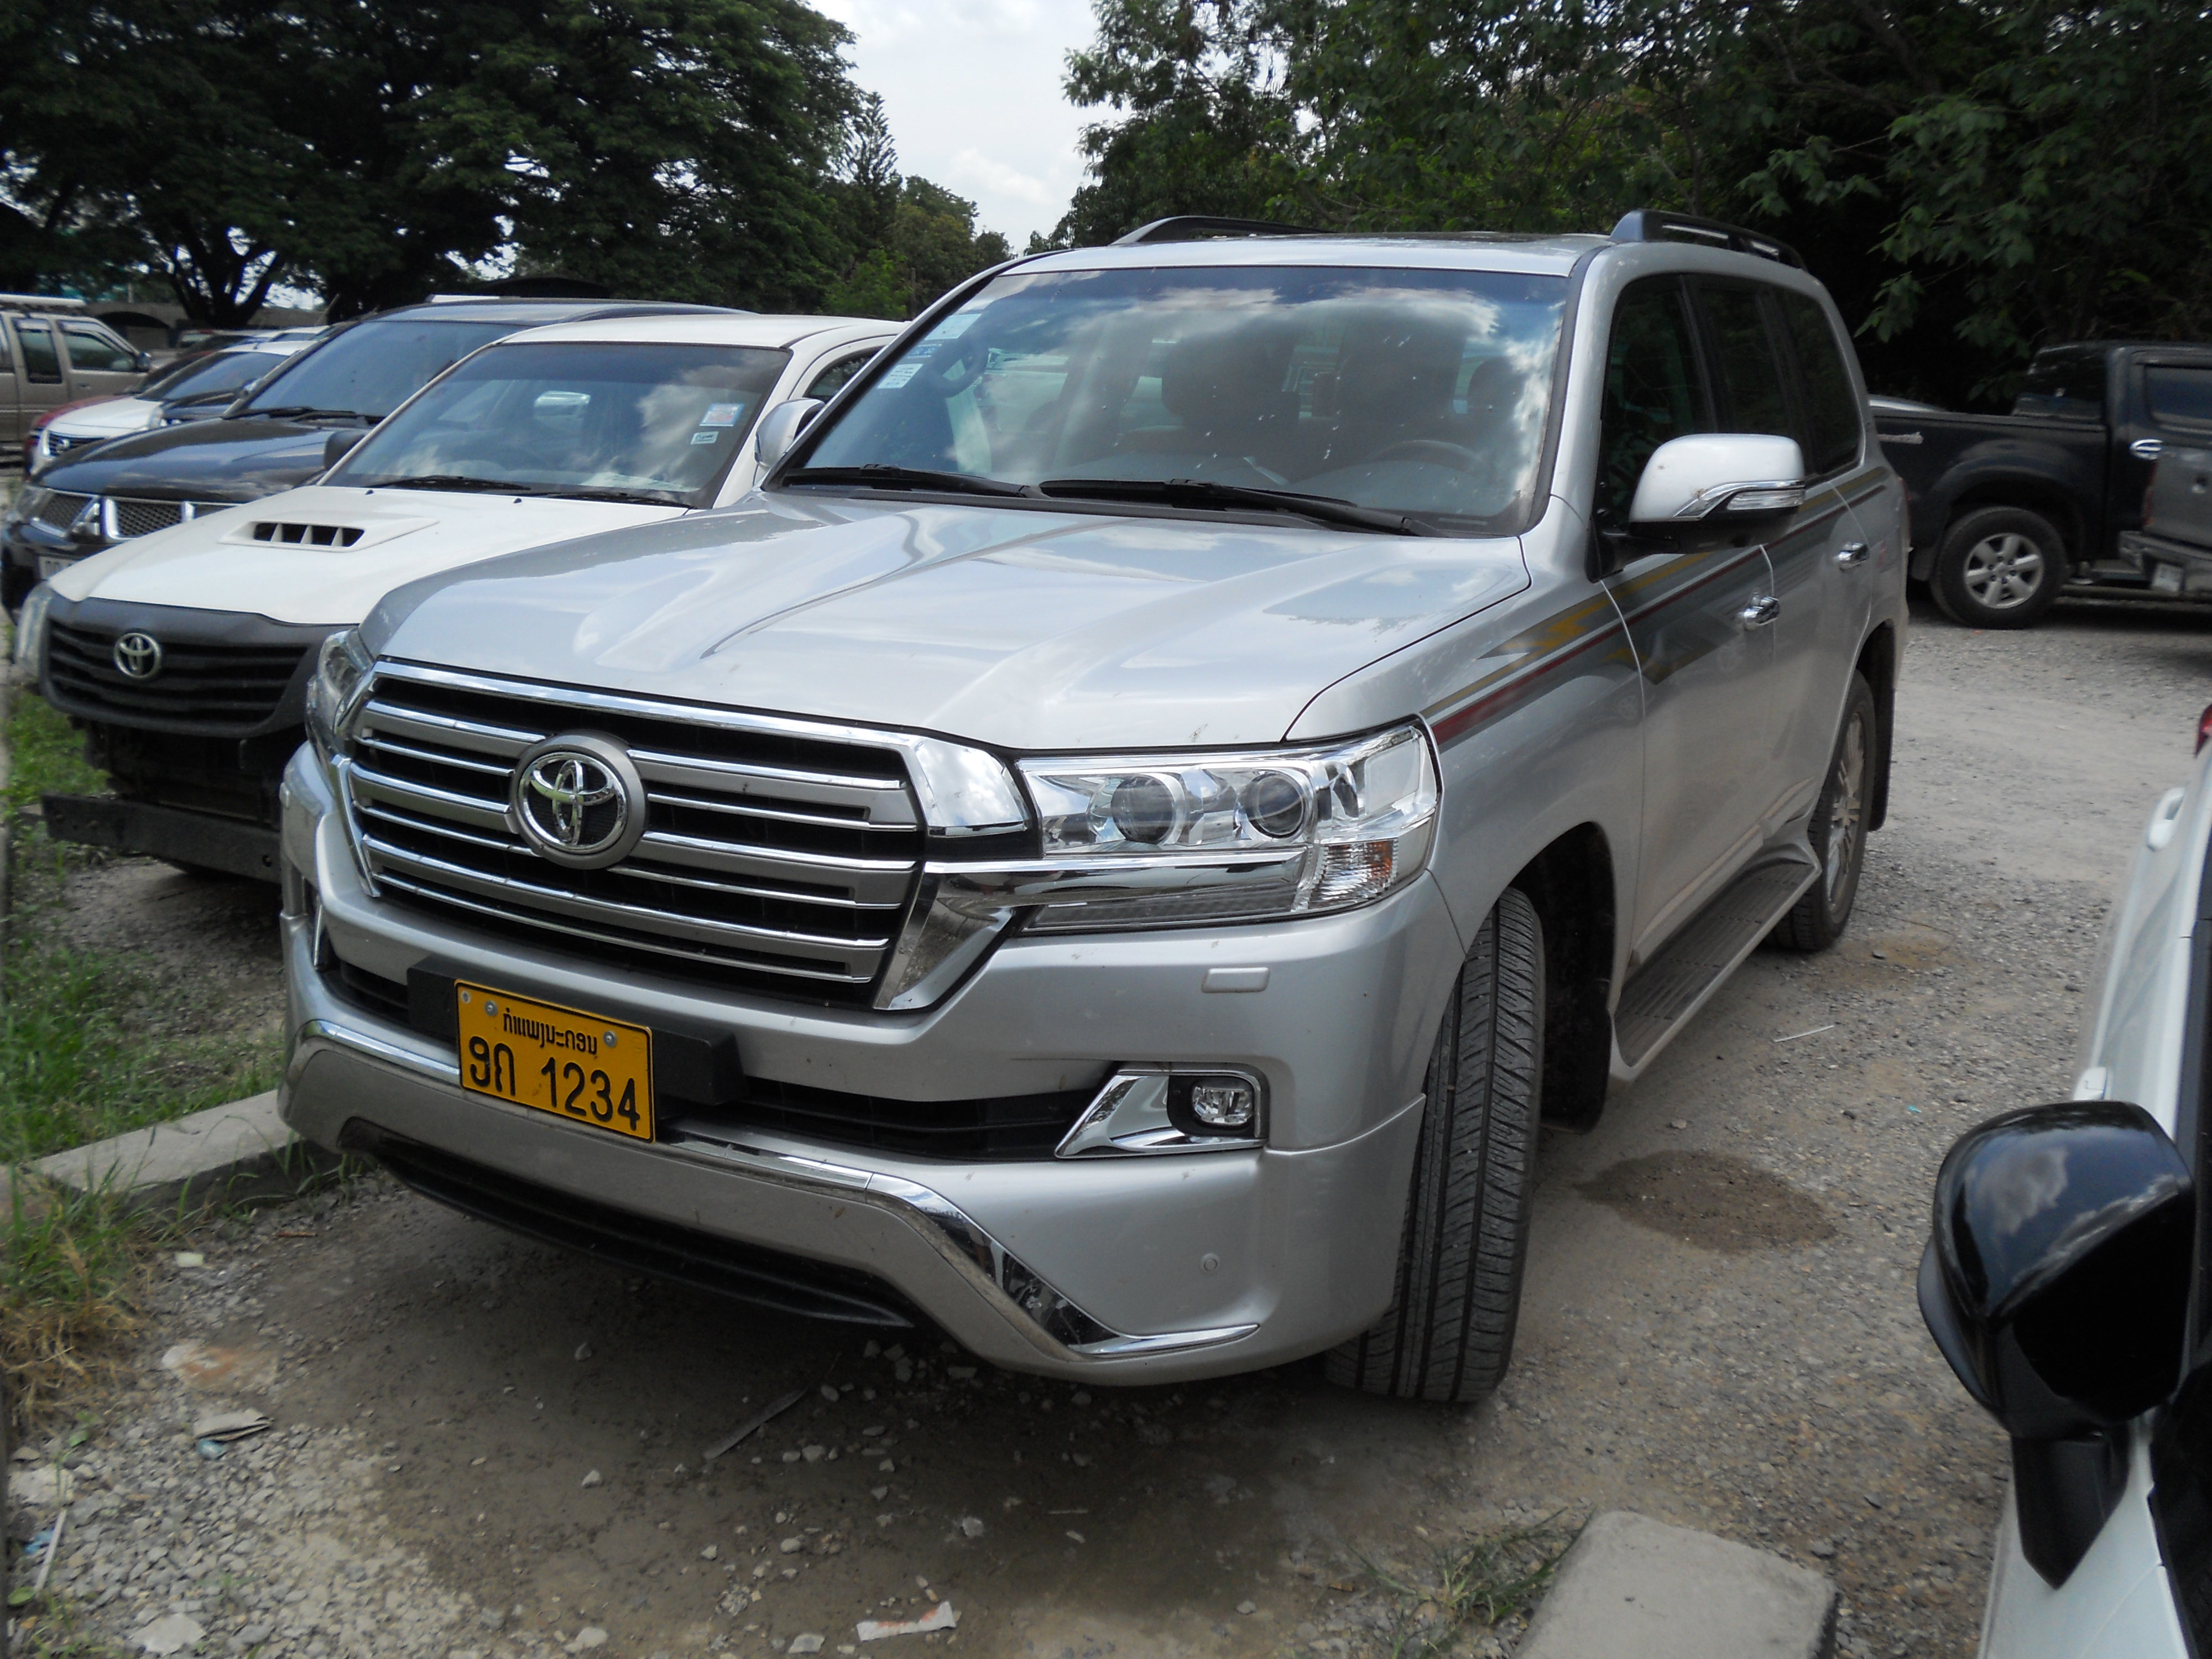 File2017 Toyota Land Cruiser 200 V8 Vx Limited Editionjpg